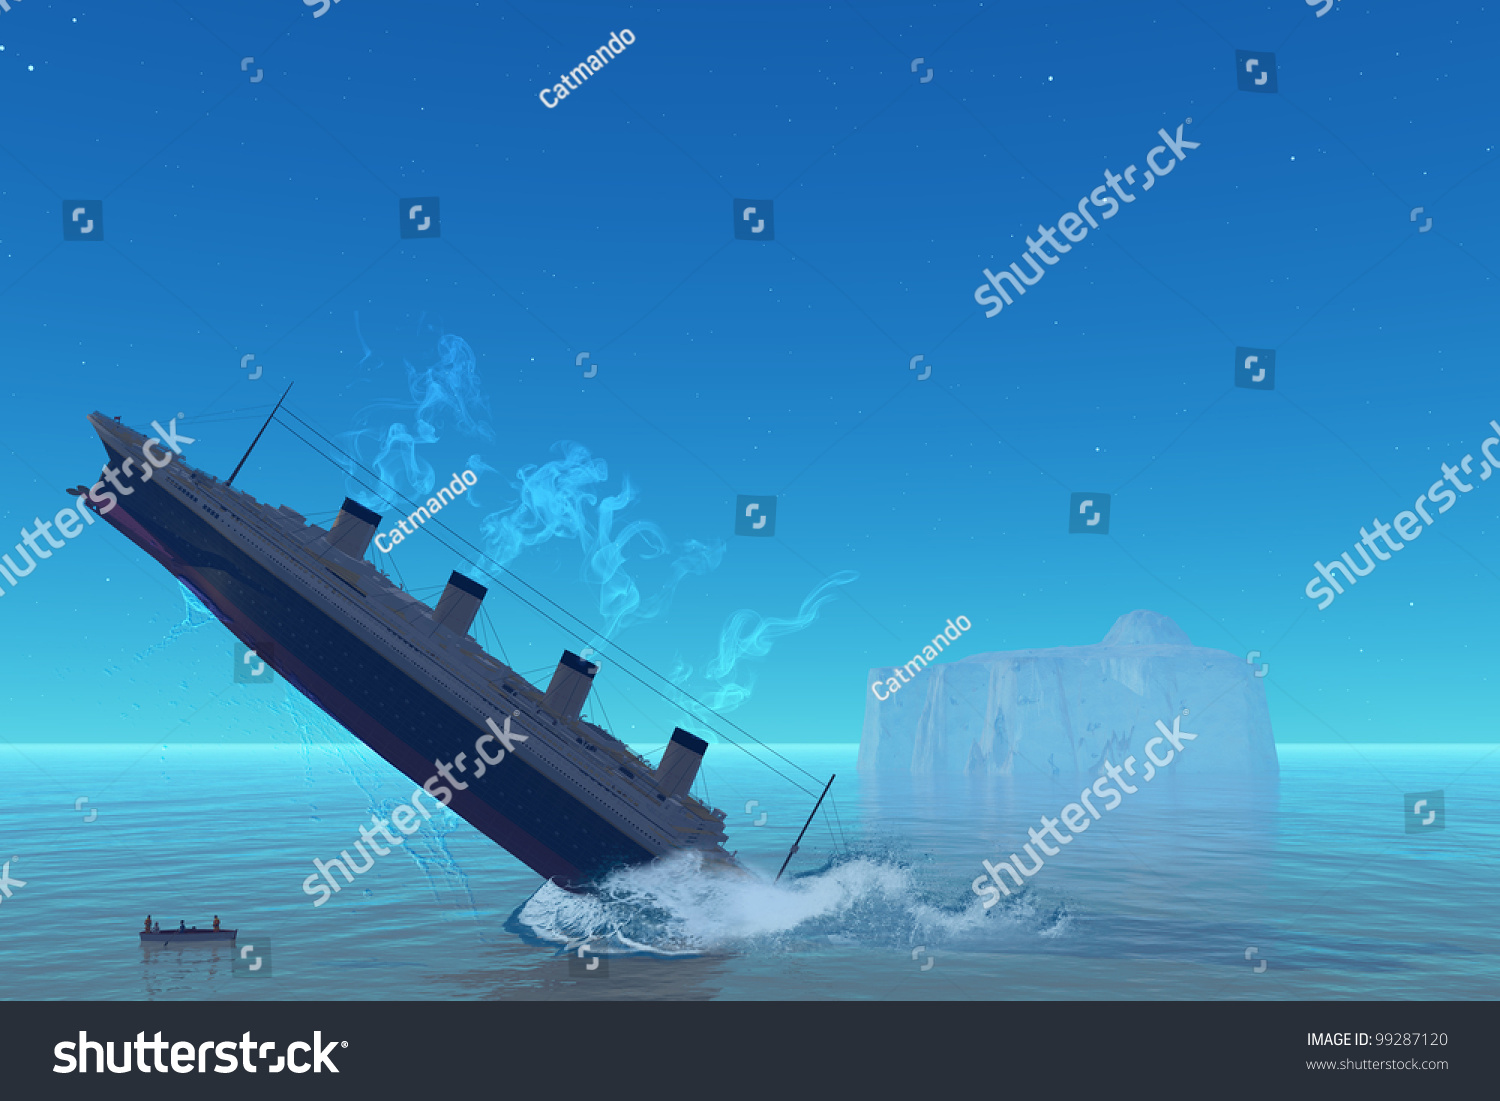 Ship Sinking - A Cruiseship Goes Down To The Ocean Floor ...